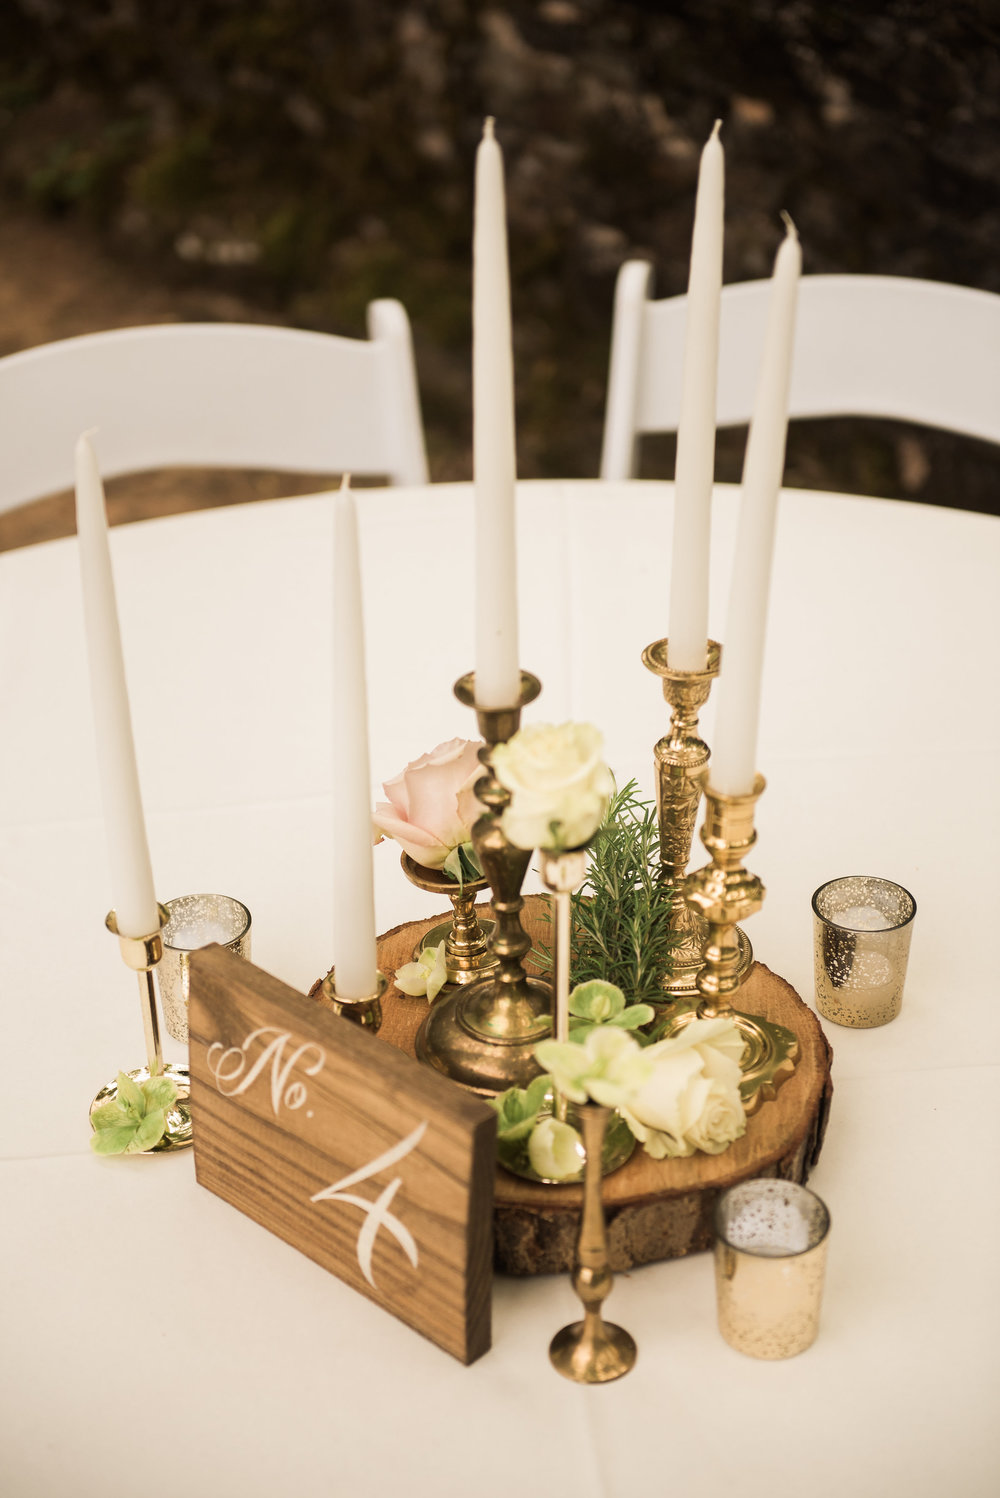 A Green and White Romantic Boho Wedding. An elegant but rustic boho table centerpiece with antique brash candlesticks, wood slabs and floral accents. | Flowers by Flower Buds | Photograph by Heart and Oak Photography | Venue The Ruins at Kellum Valley Farm